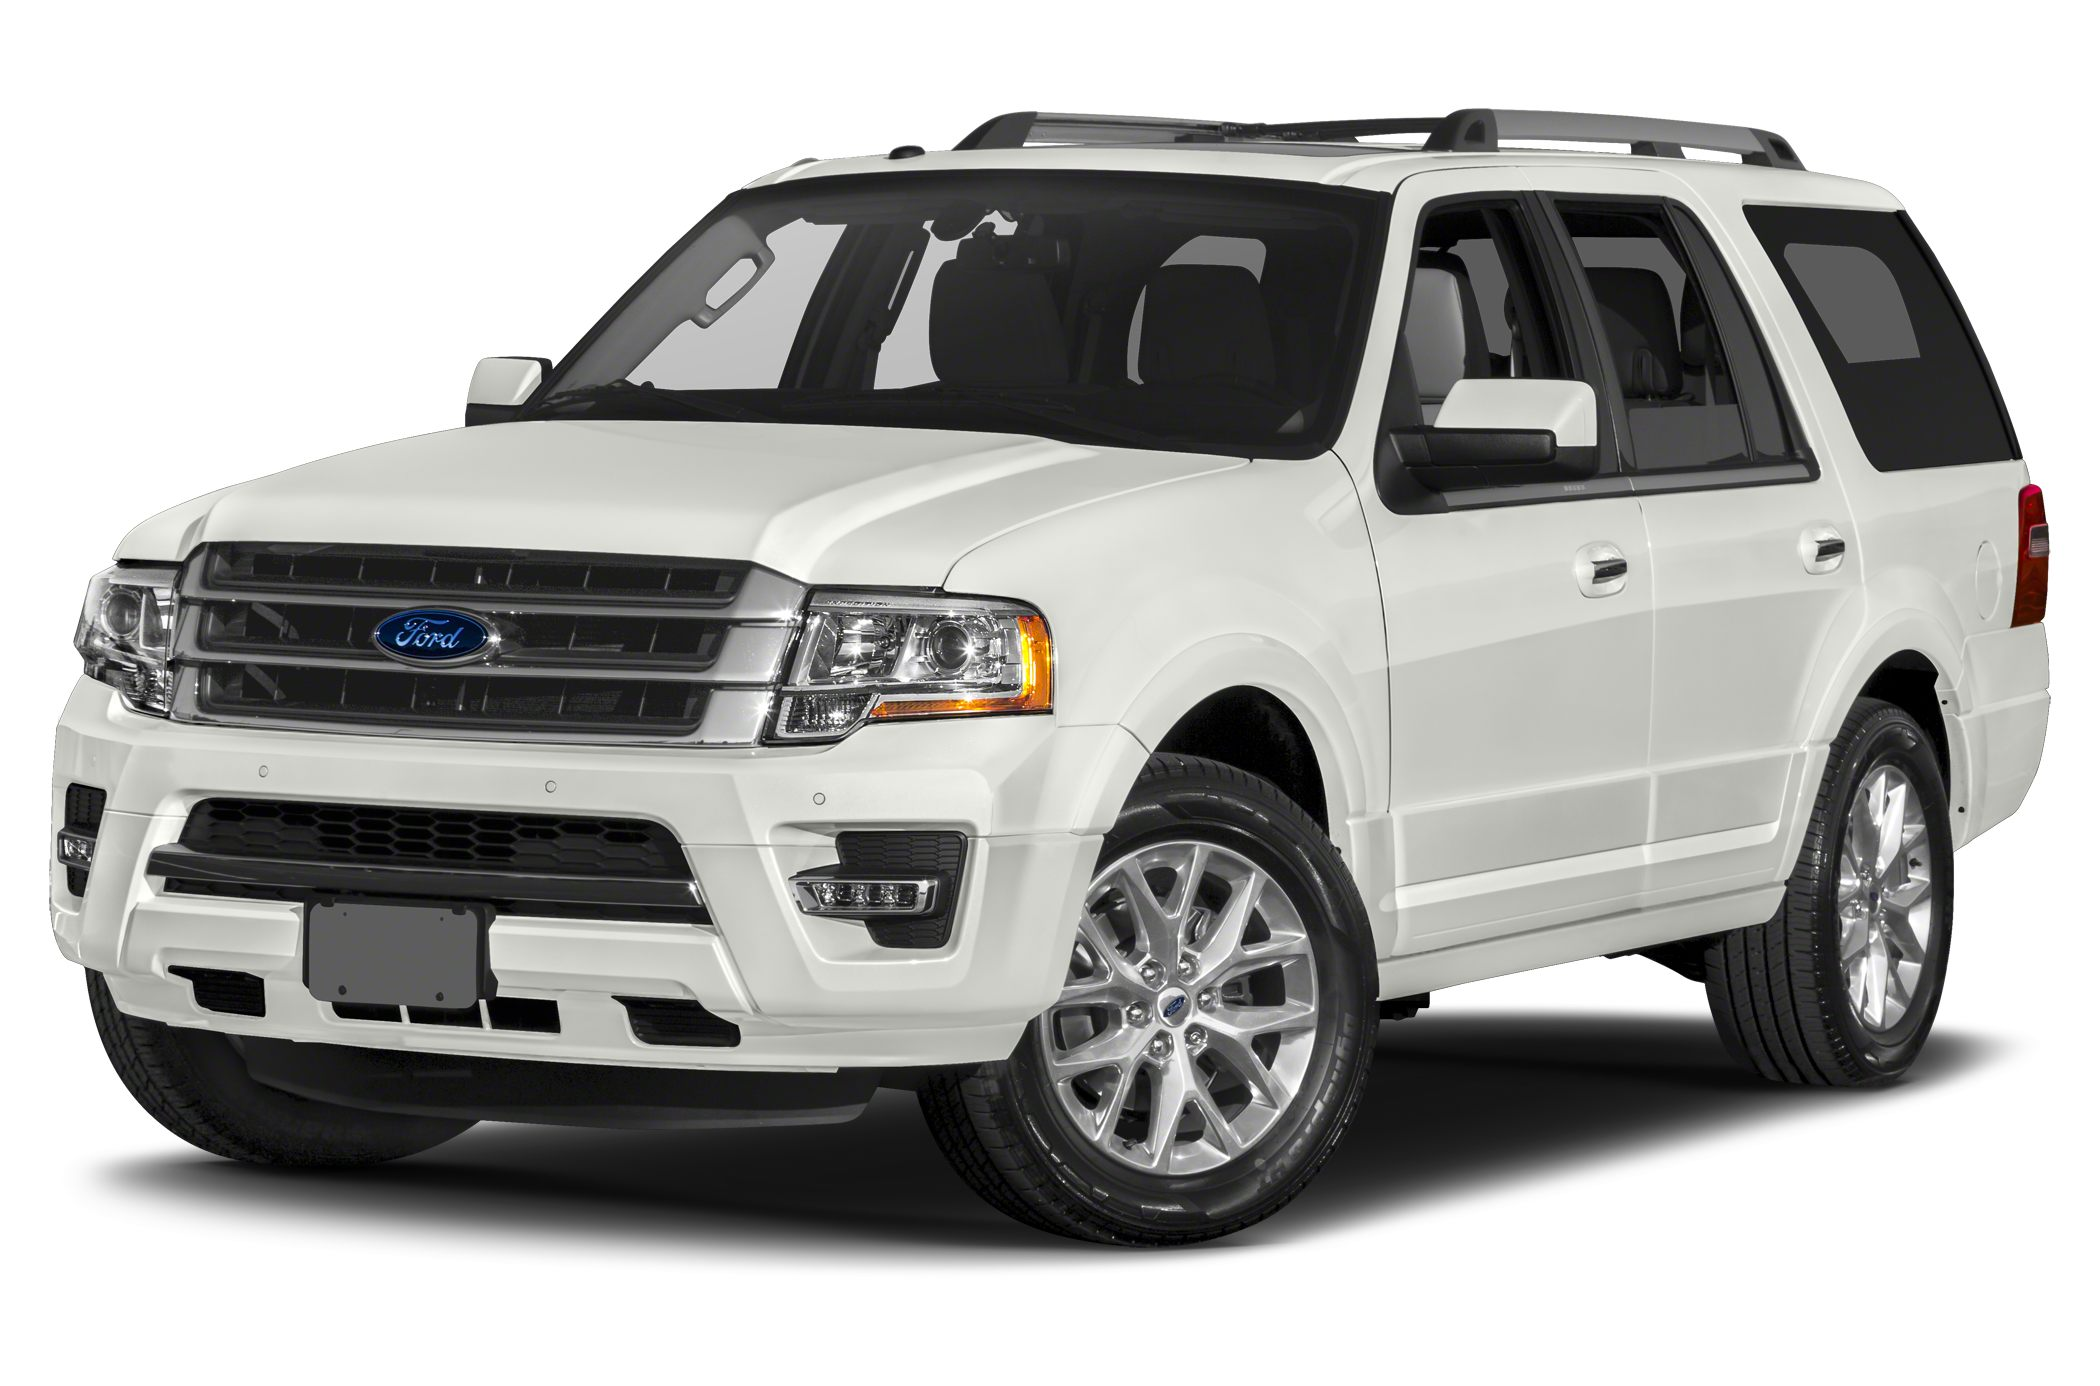 2017 Ford Expedition Limited At Mullinax there are NO DEALER FEES That SAVES you 800 over our la